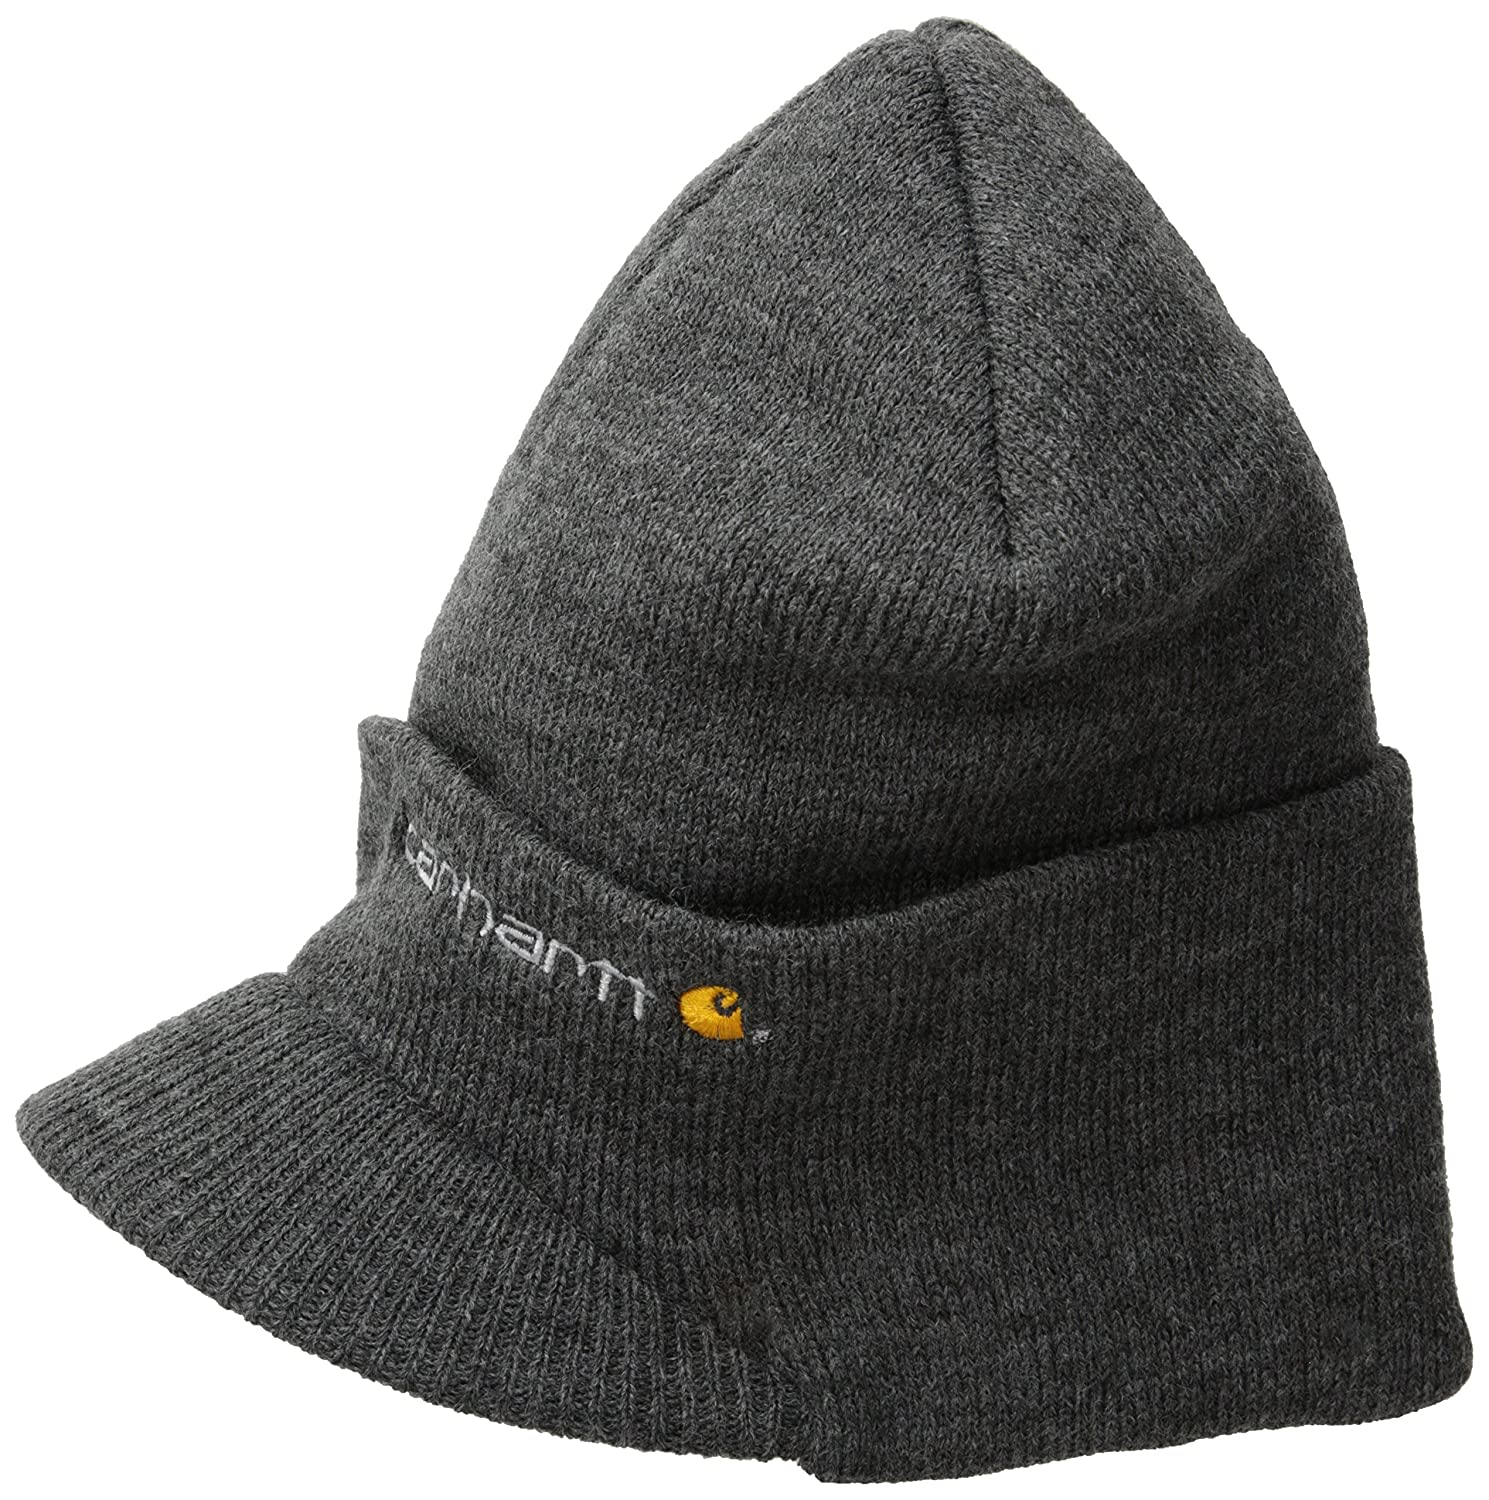 Men s Knit Hat With Visor cbcc853ad74a